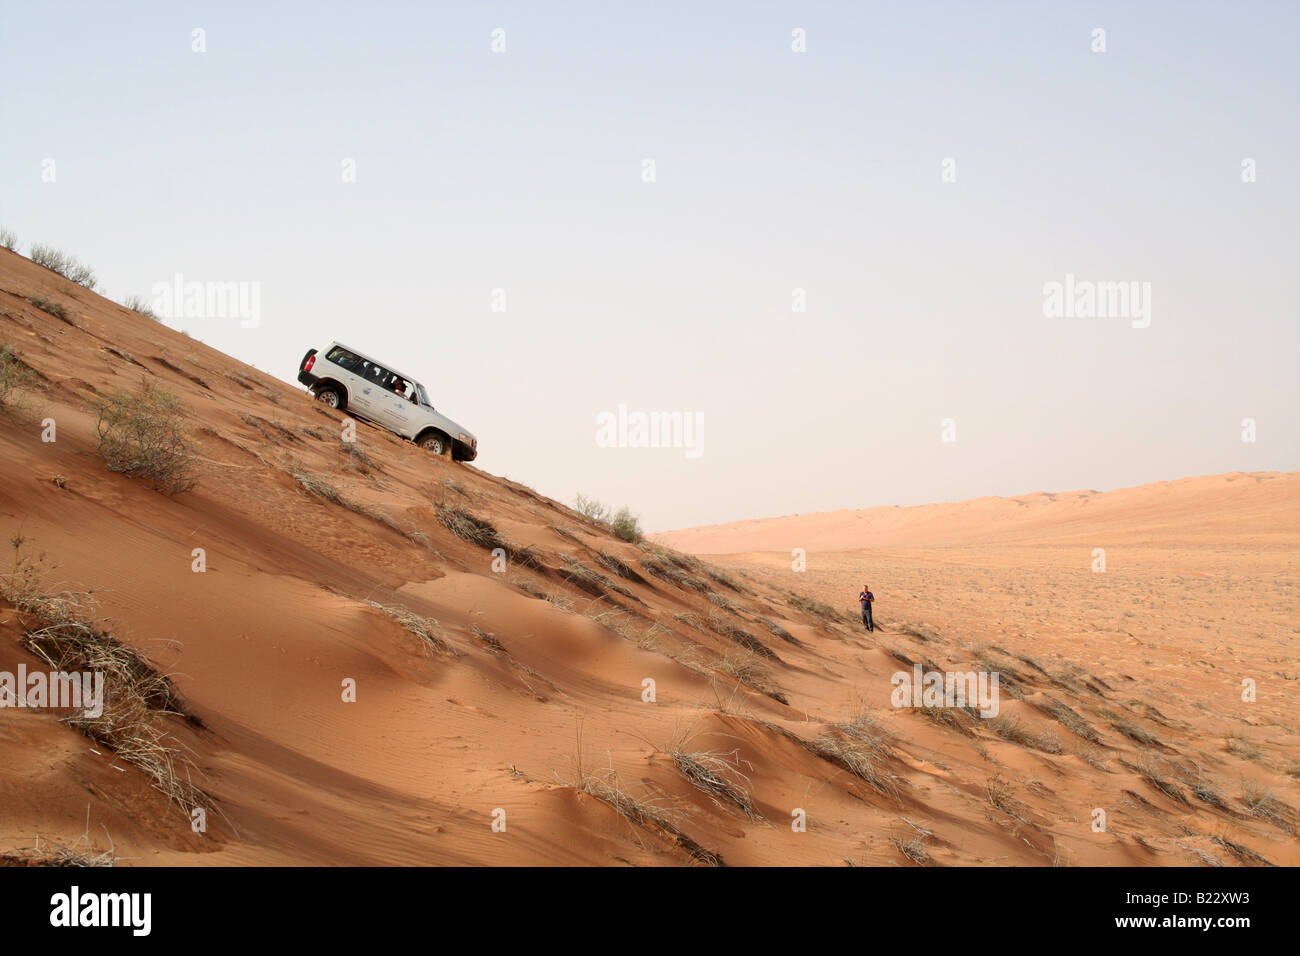 Steep descent, Wahiba Sands, Sultanate of Oman - Stock Image